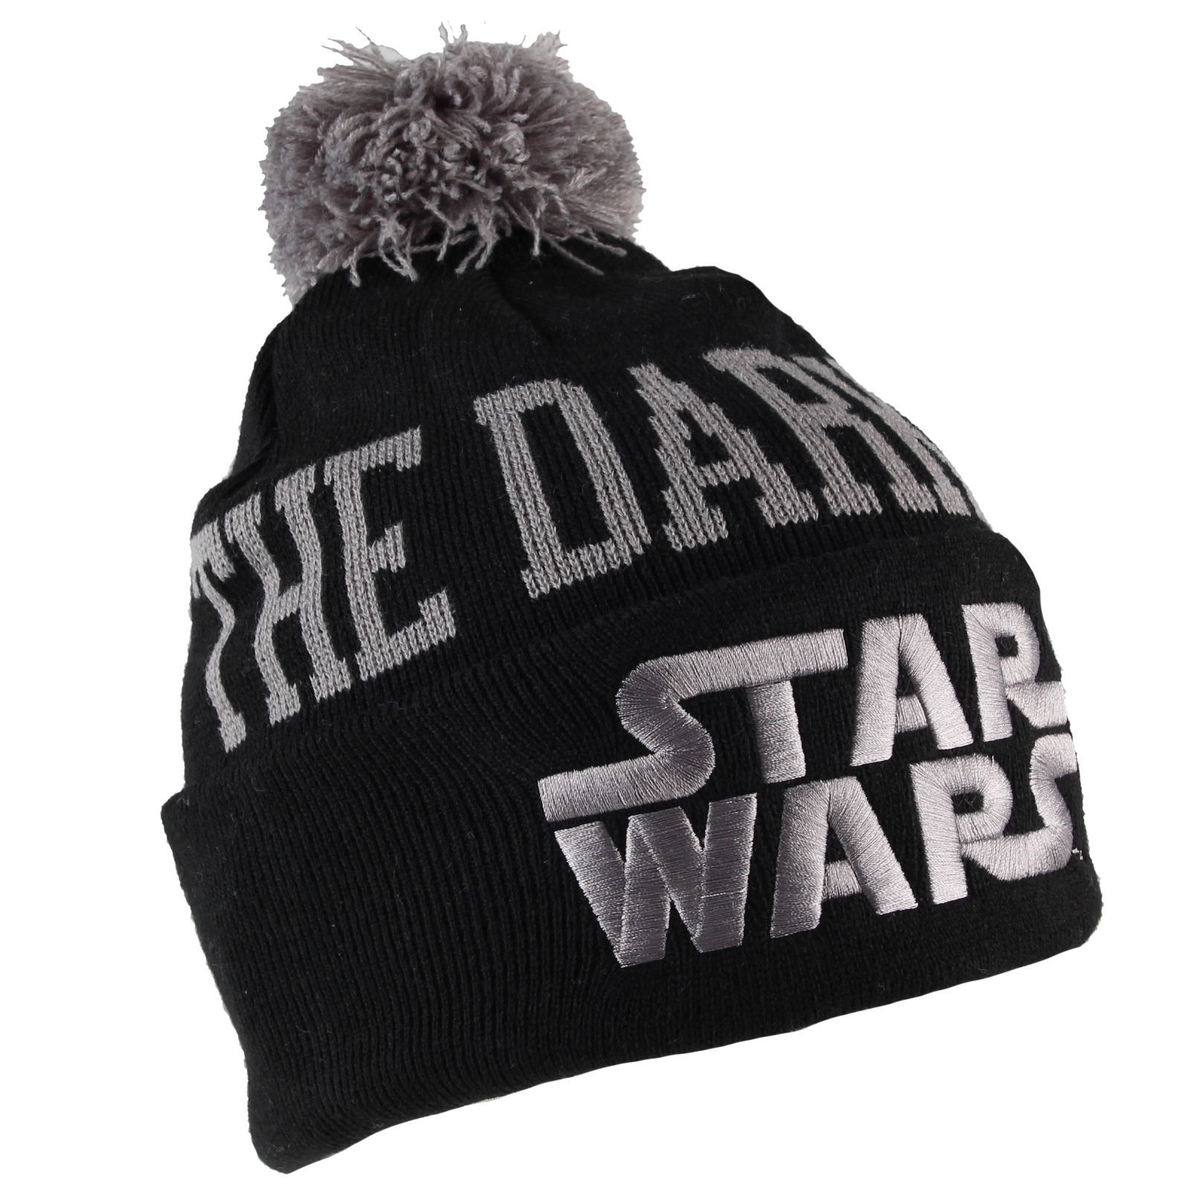 kulich Star Wars - The Darkside - Black - INDIEGO - Indie0335